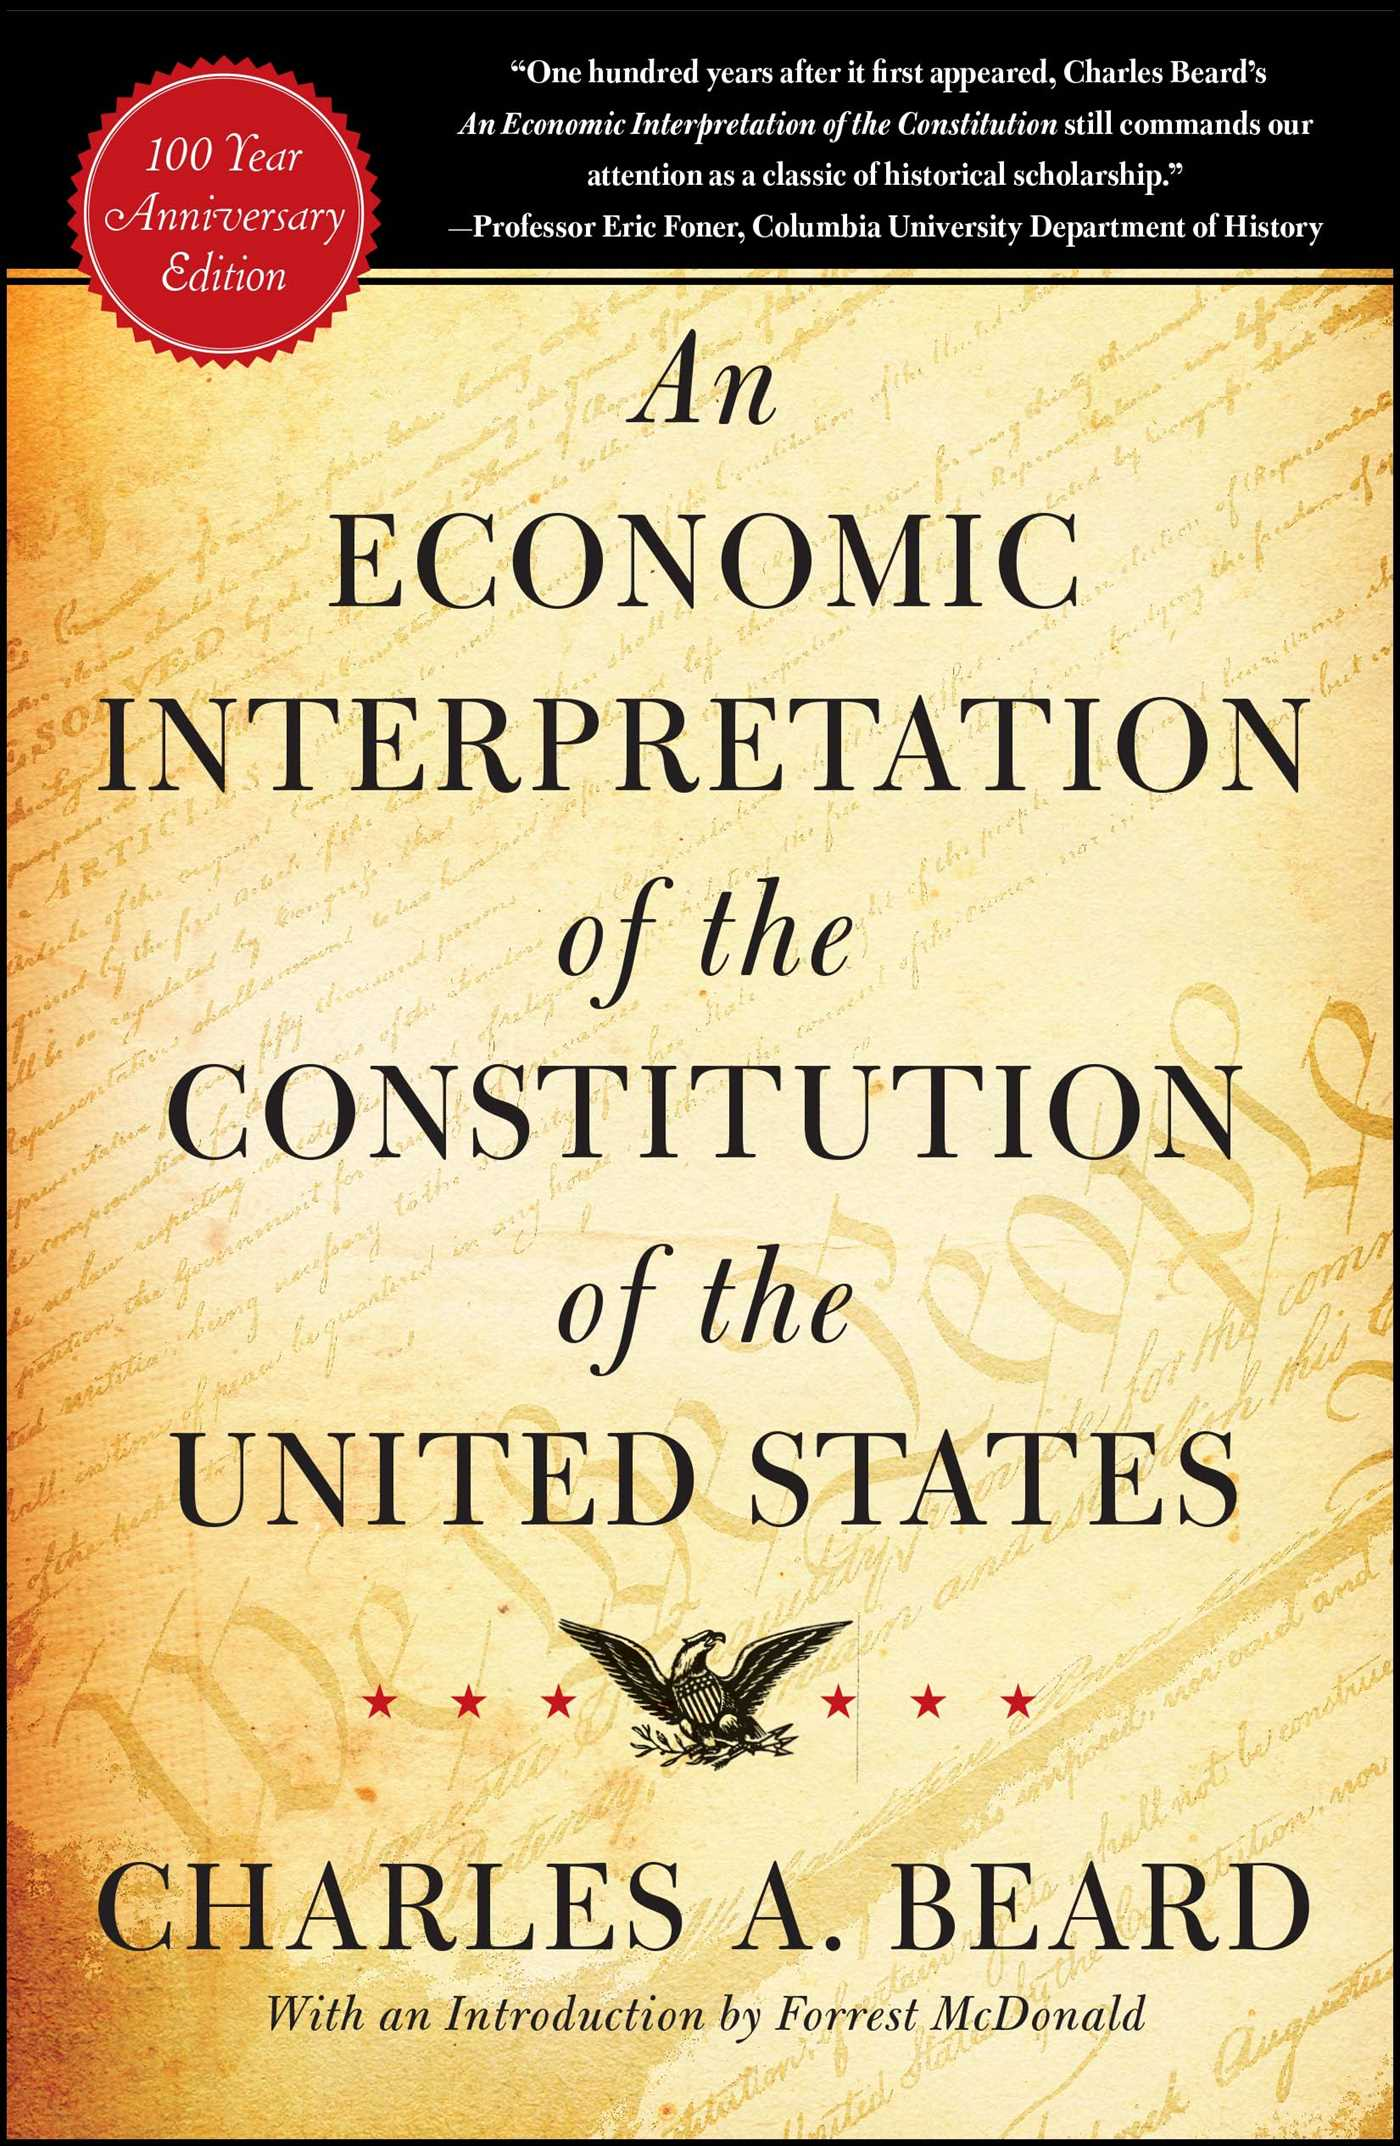 An economic interpretation of the constitution of the united states 9780029024805 hr